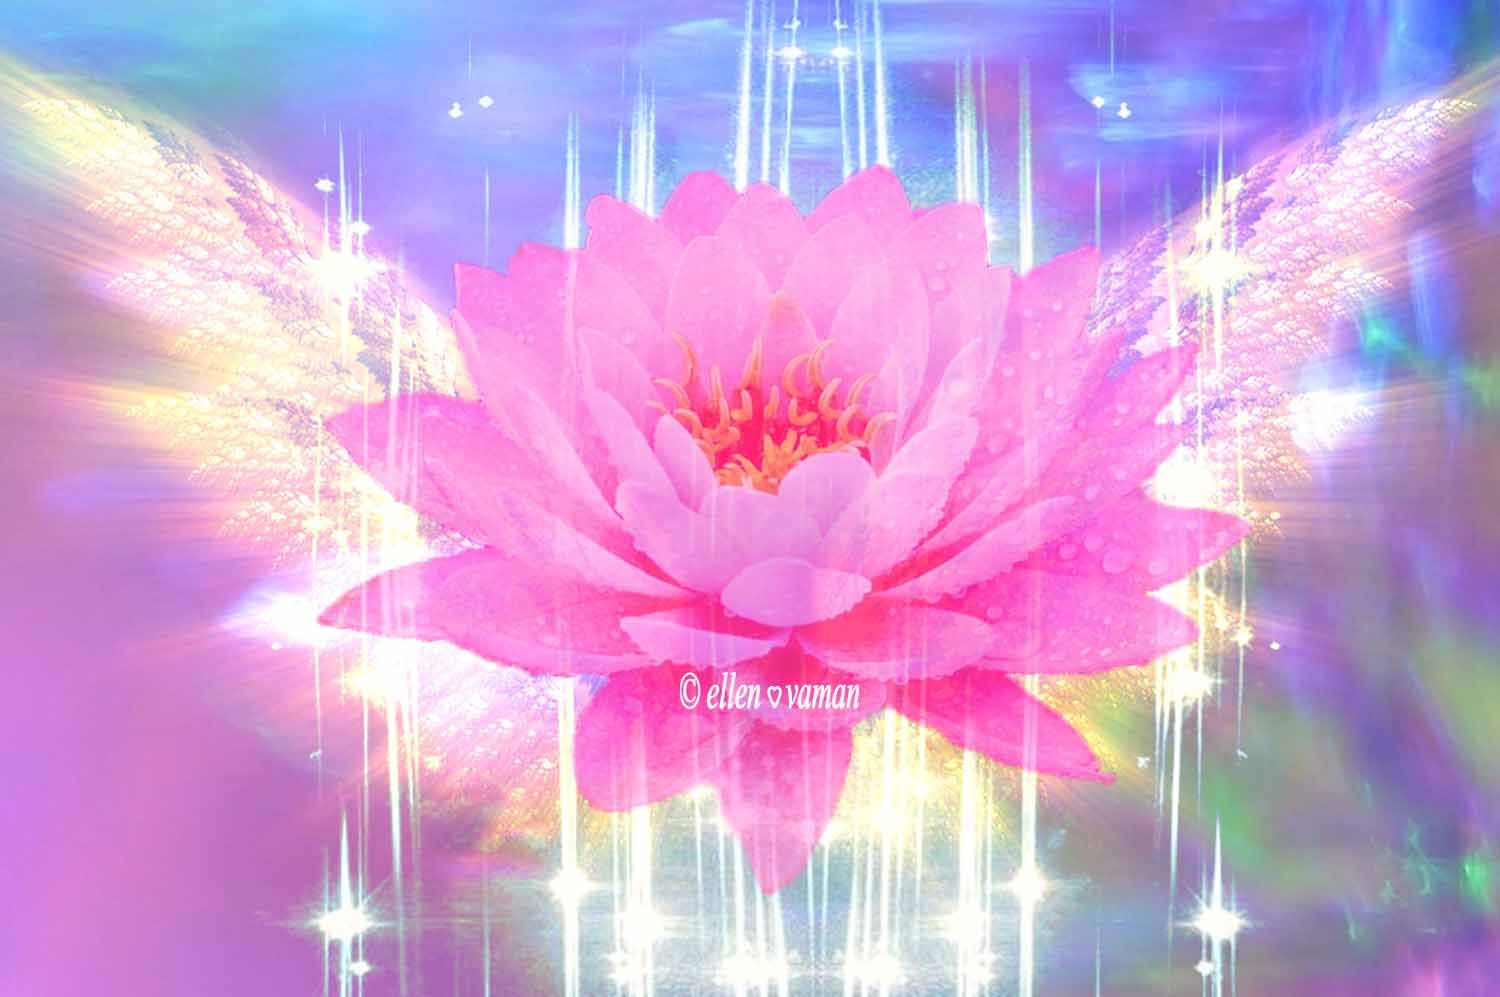 Take Your Seat On The Thousand Petals Of The Lotus And Gaze On